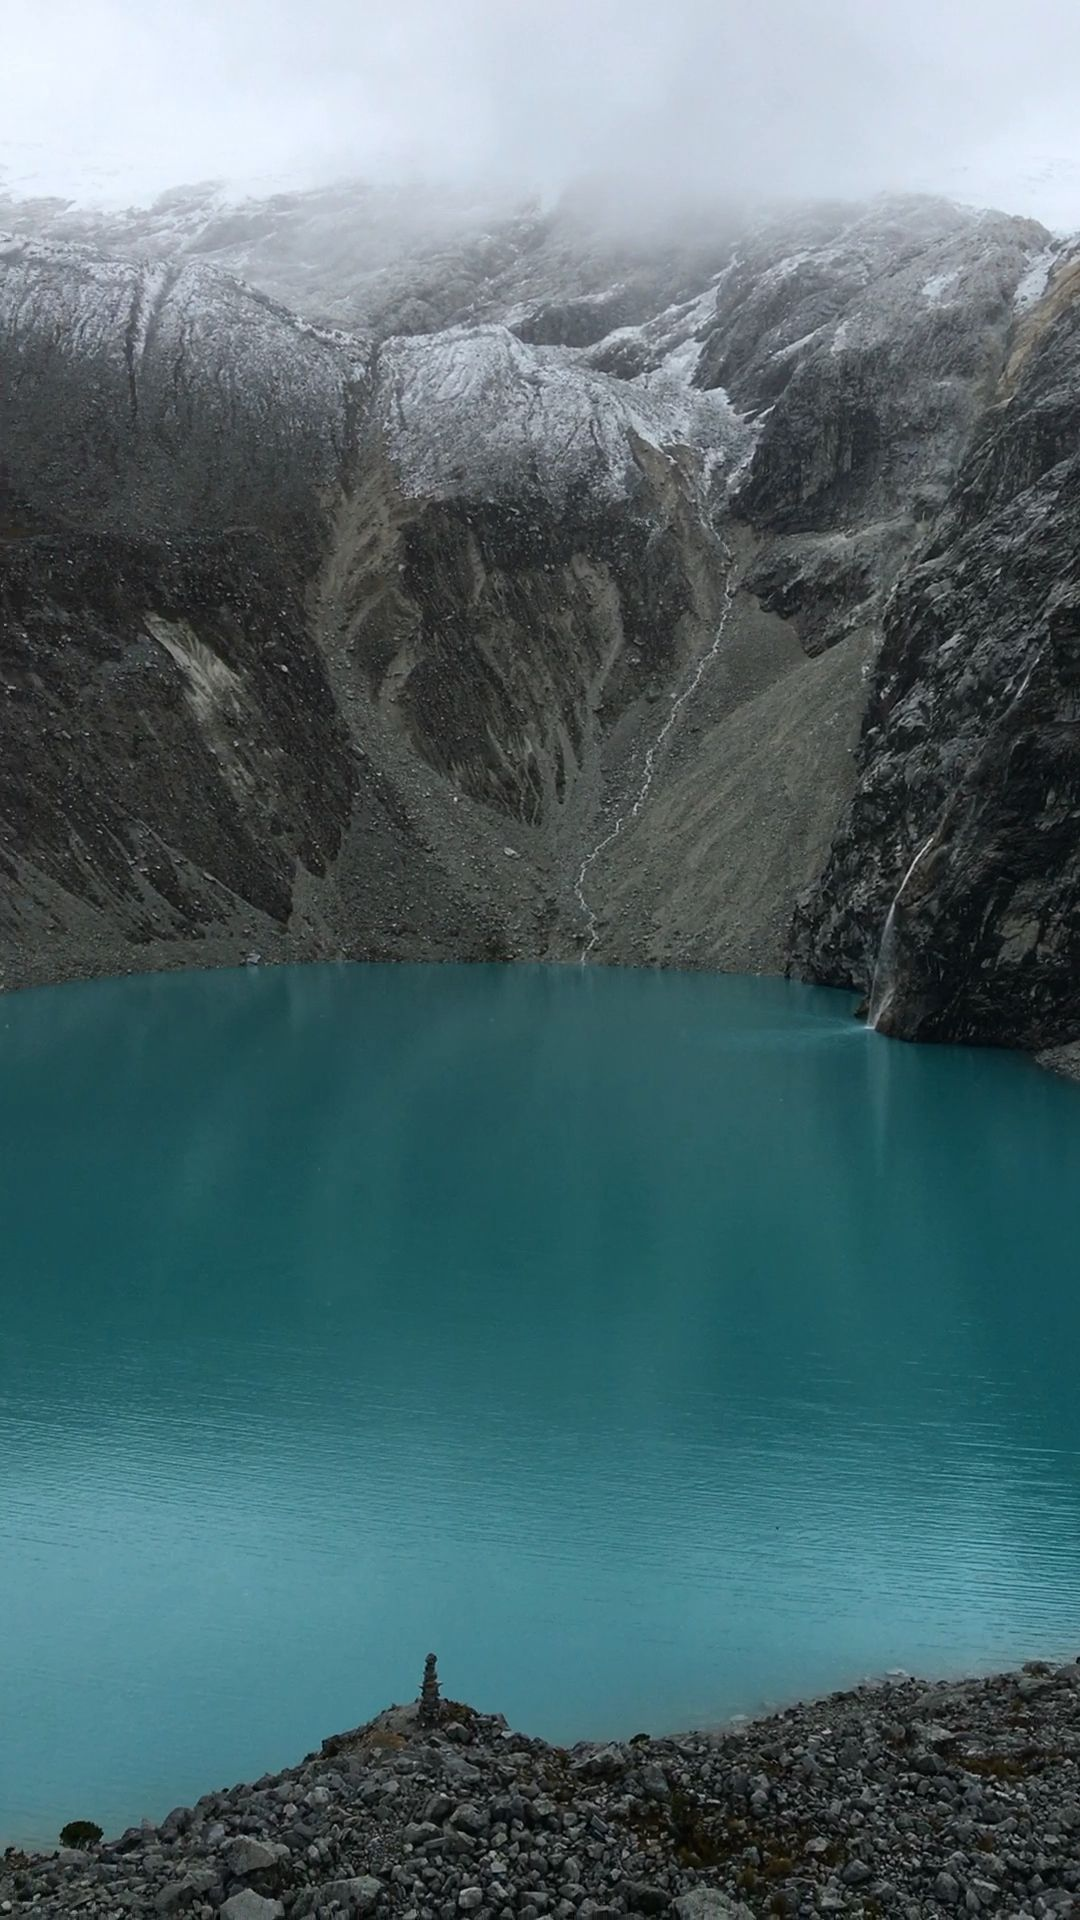 Visit our guide for all the top Peru travel destinations! The stunning Laguna 69 hike is a must!